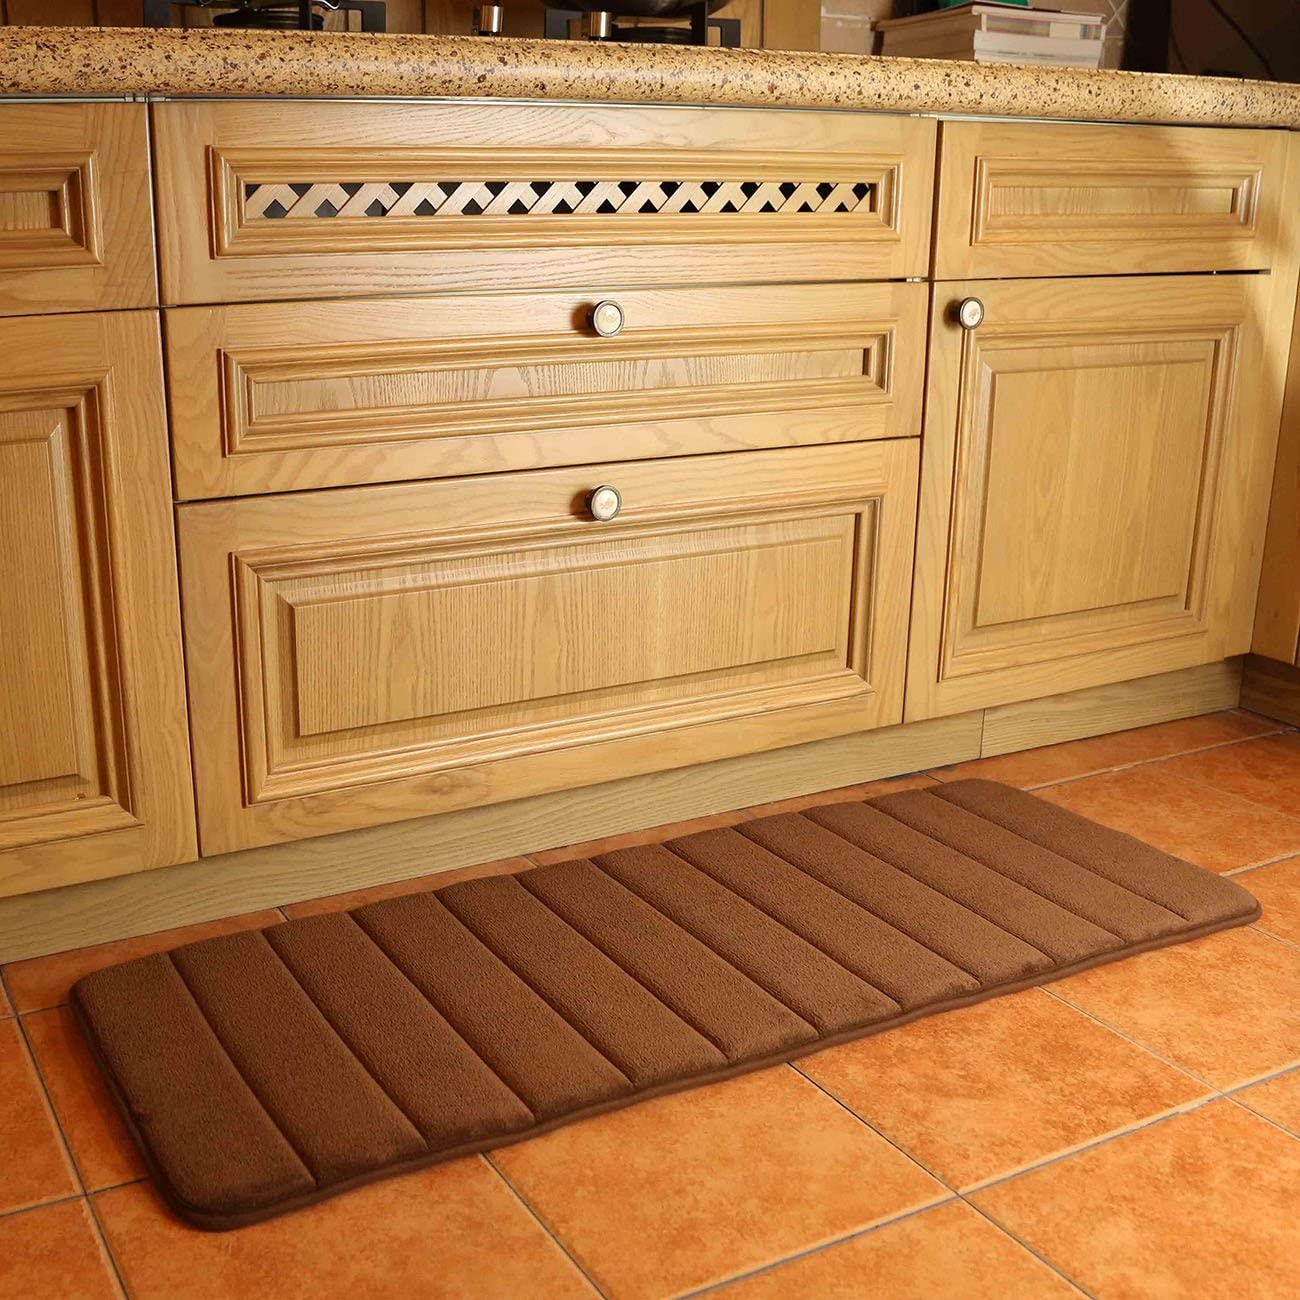 Extra Long Anti-Fatigue Memory Foam Kitchen Mats